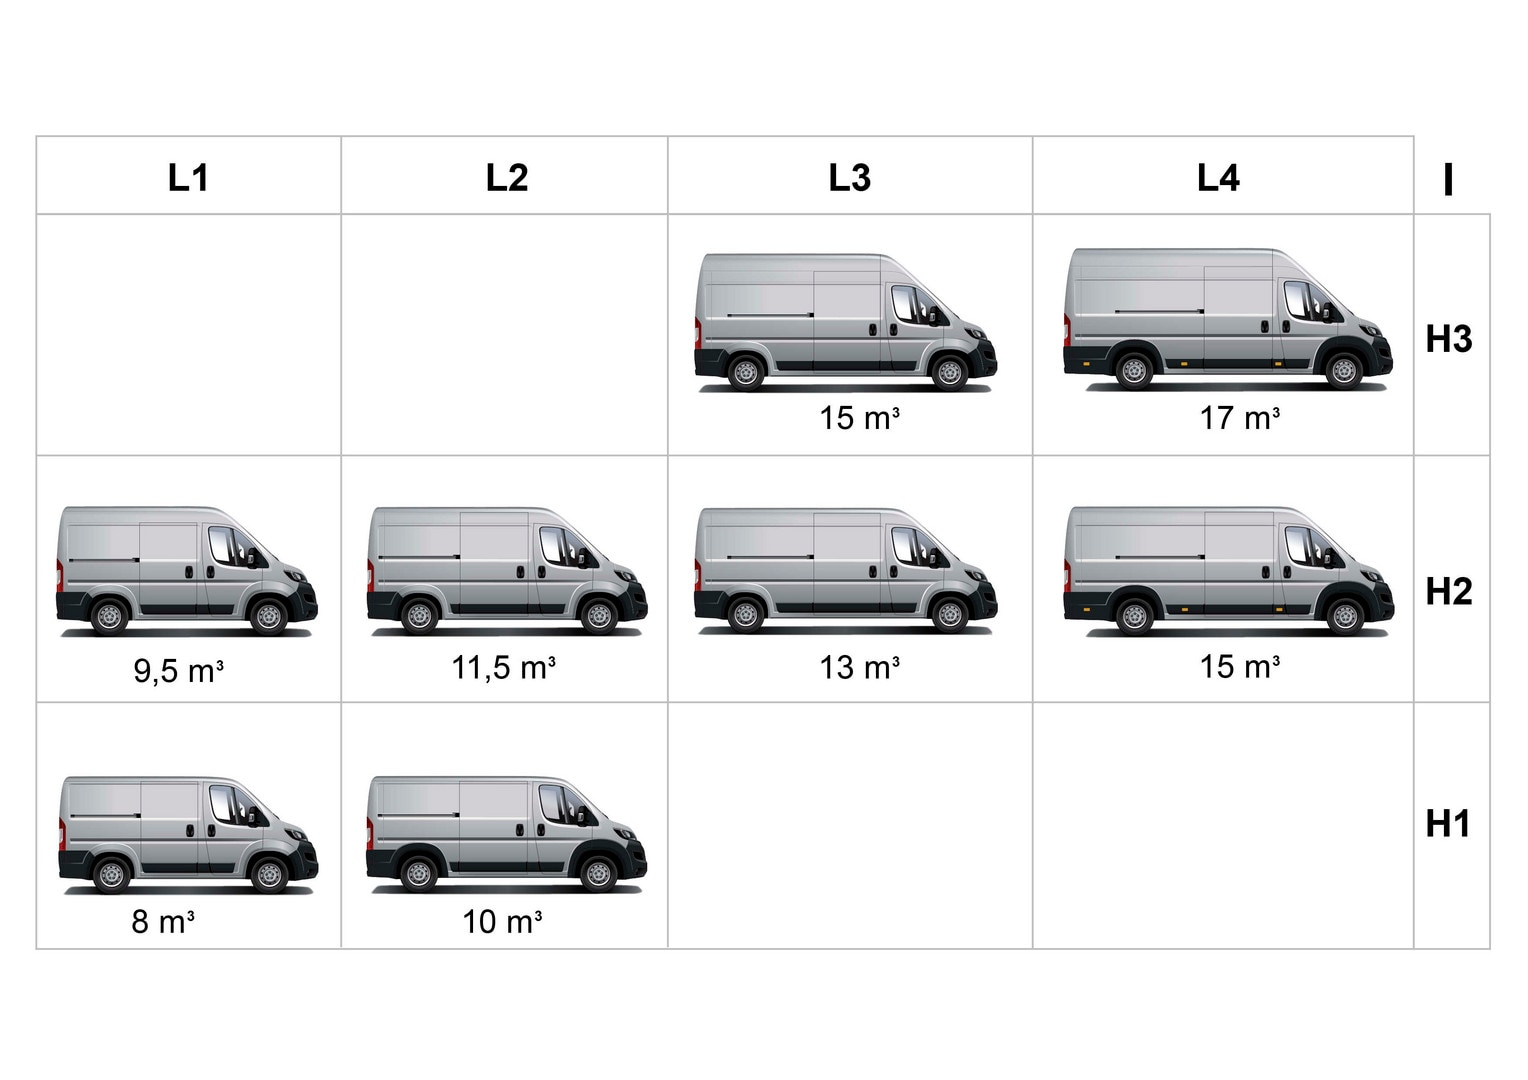 WHAT IS THE AVERAGE CONSUMPTION* OF YOUR BOXER VAN?